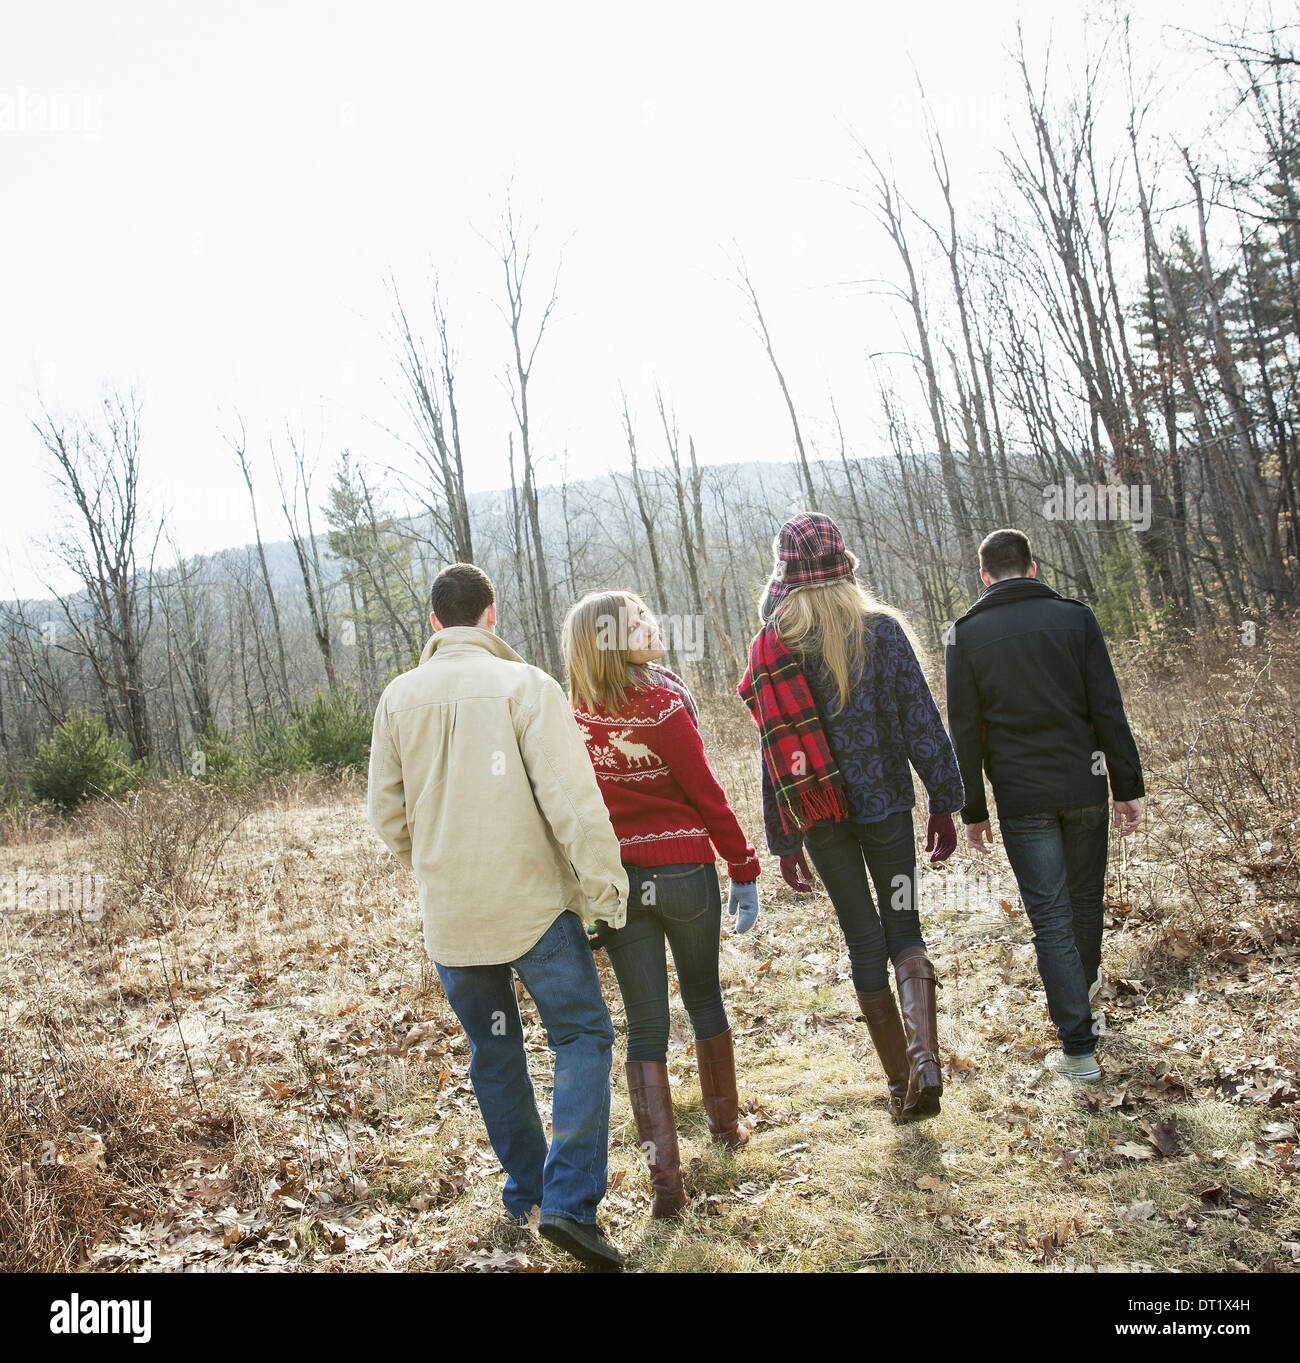 A group of four people walking through woodland on a winter day Two men and two women - Stock Image